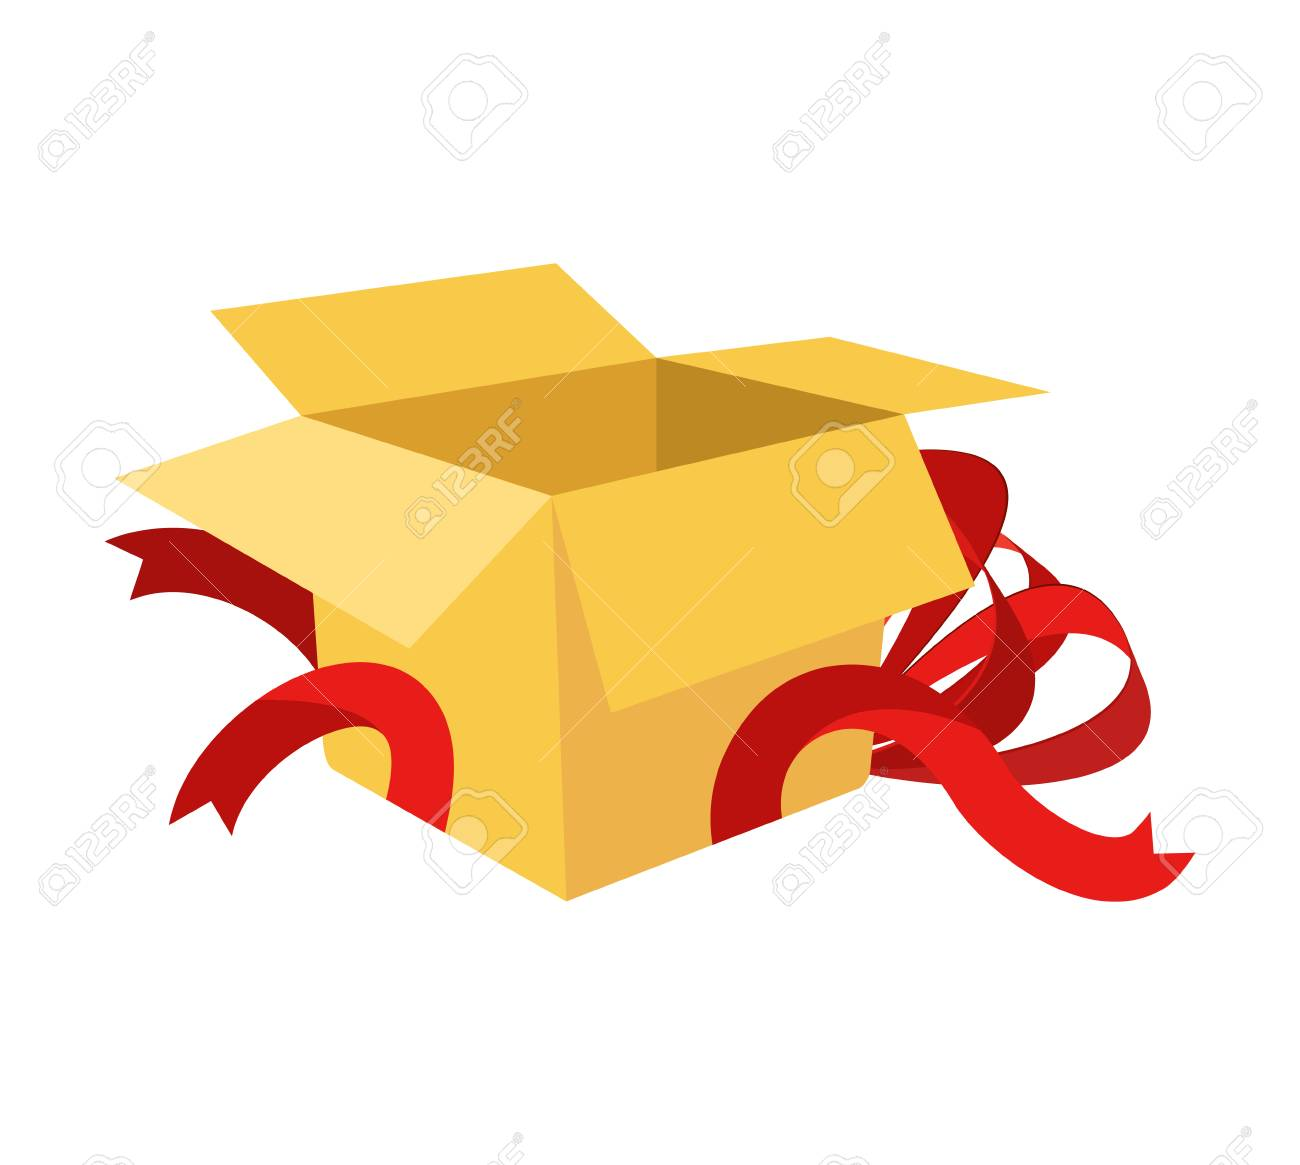 Open Gift Box With Ribbon Royalty Free Cliparts, Vectors, And Stock  Illustration. Image 25118082.